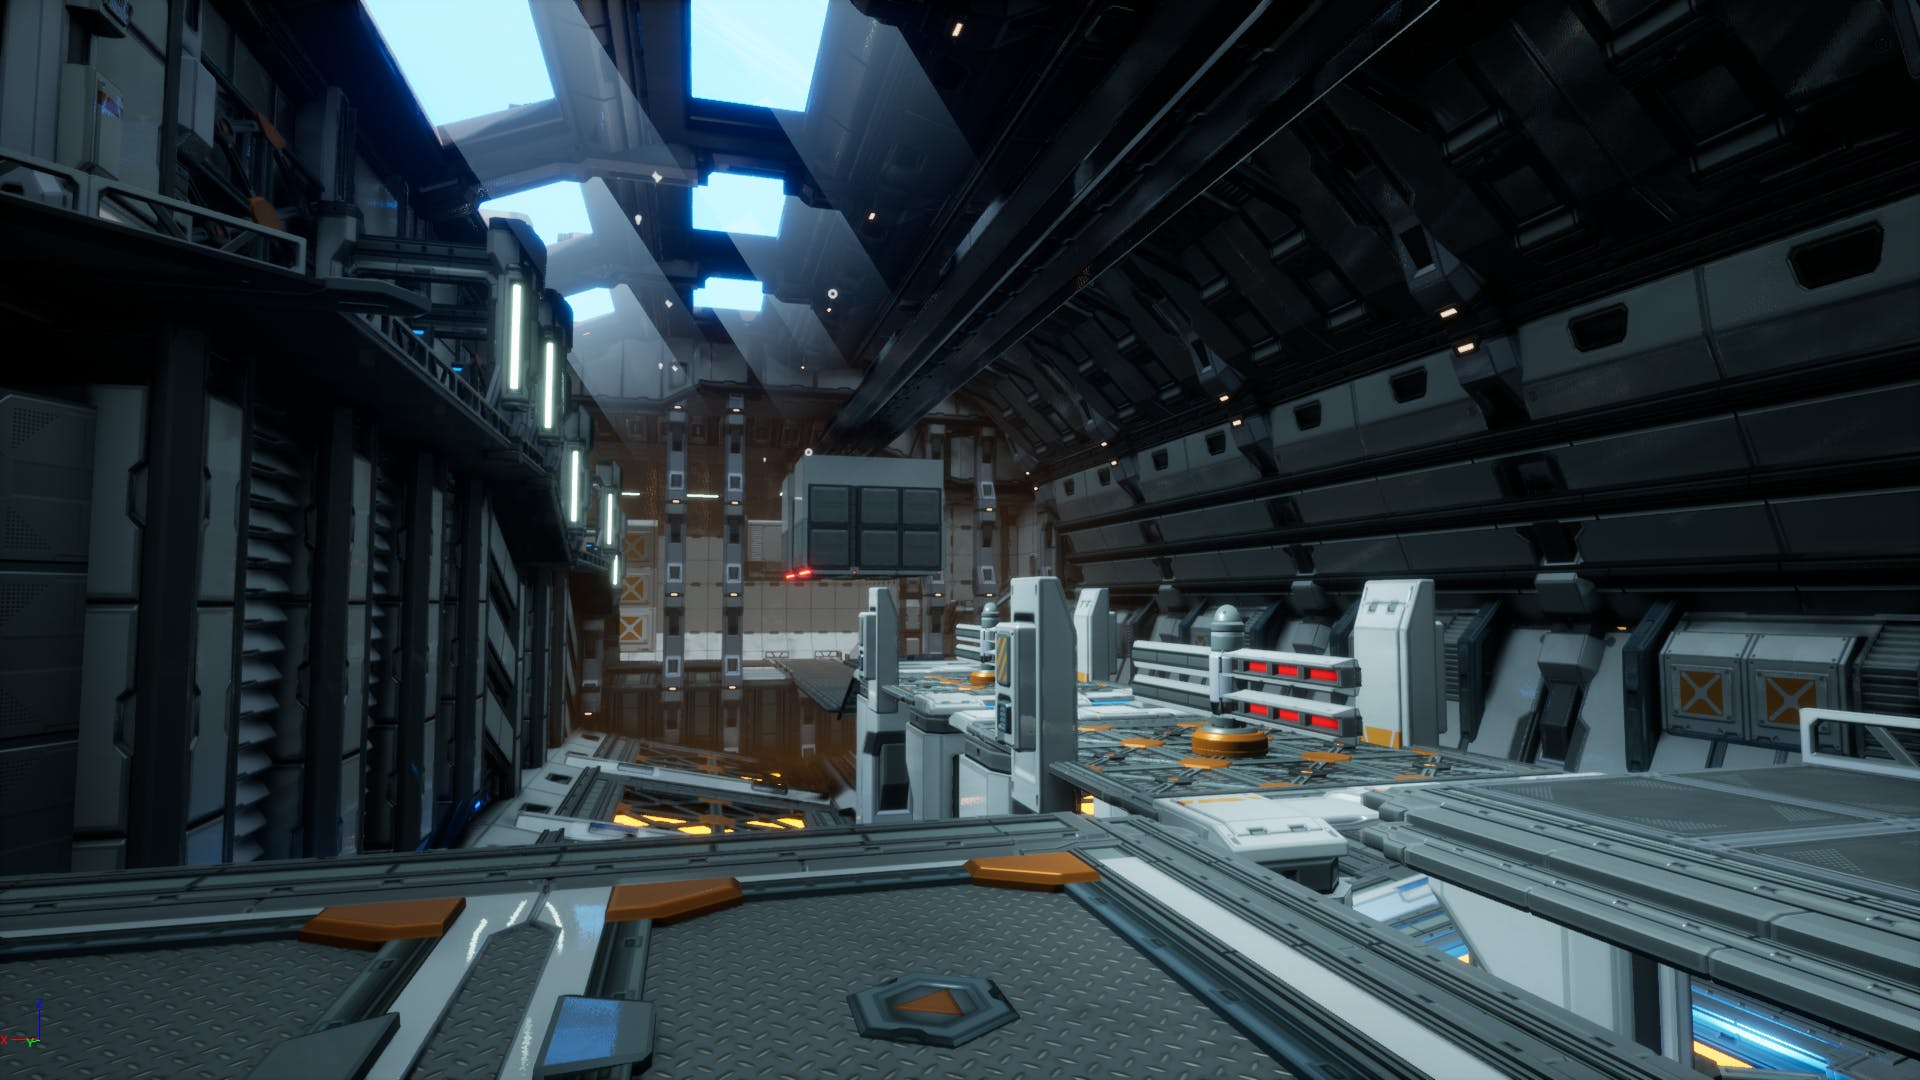 Above: Players might not have time to stop and admire the sci-fi trappings of Morticai's